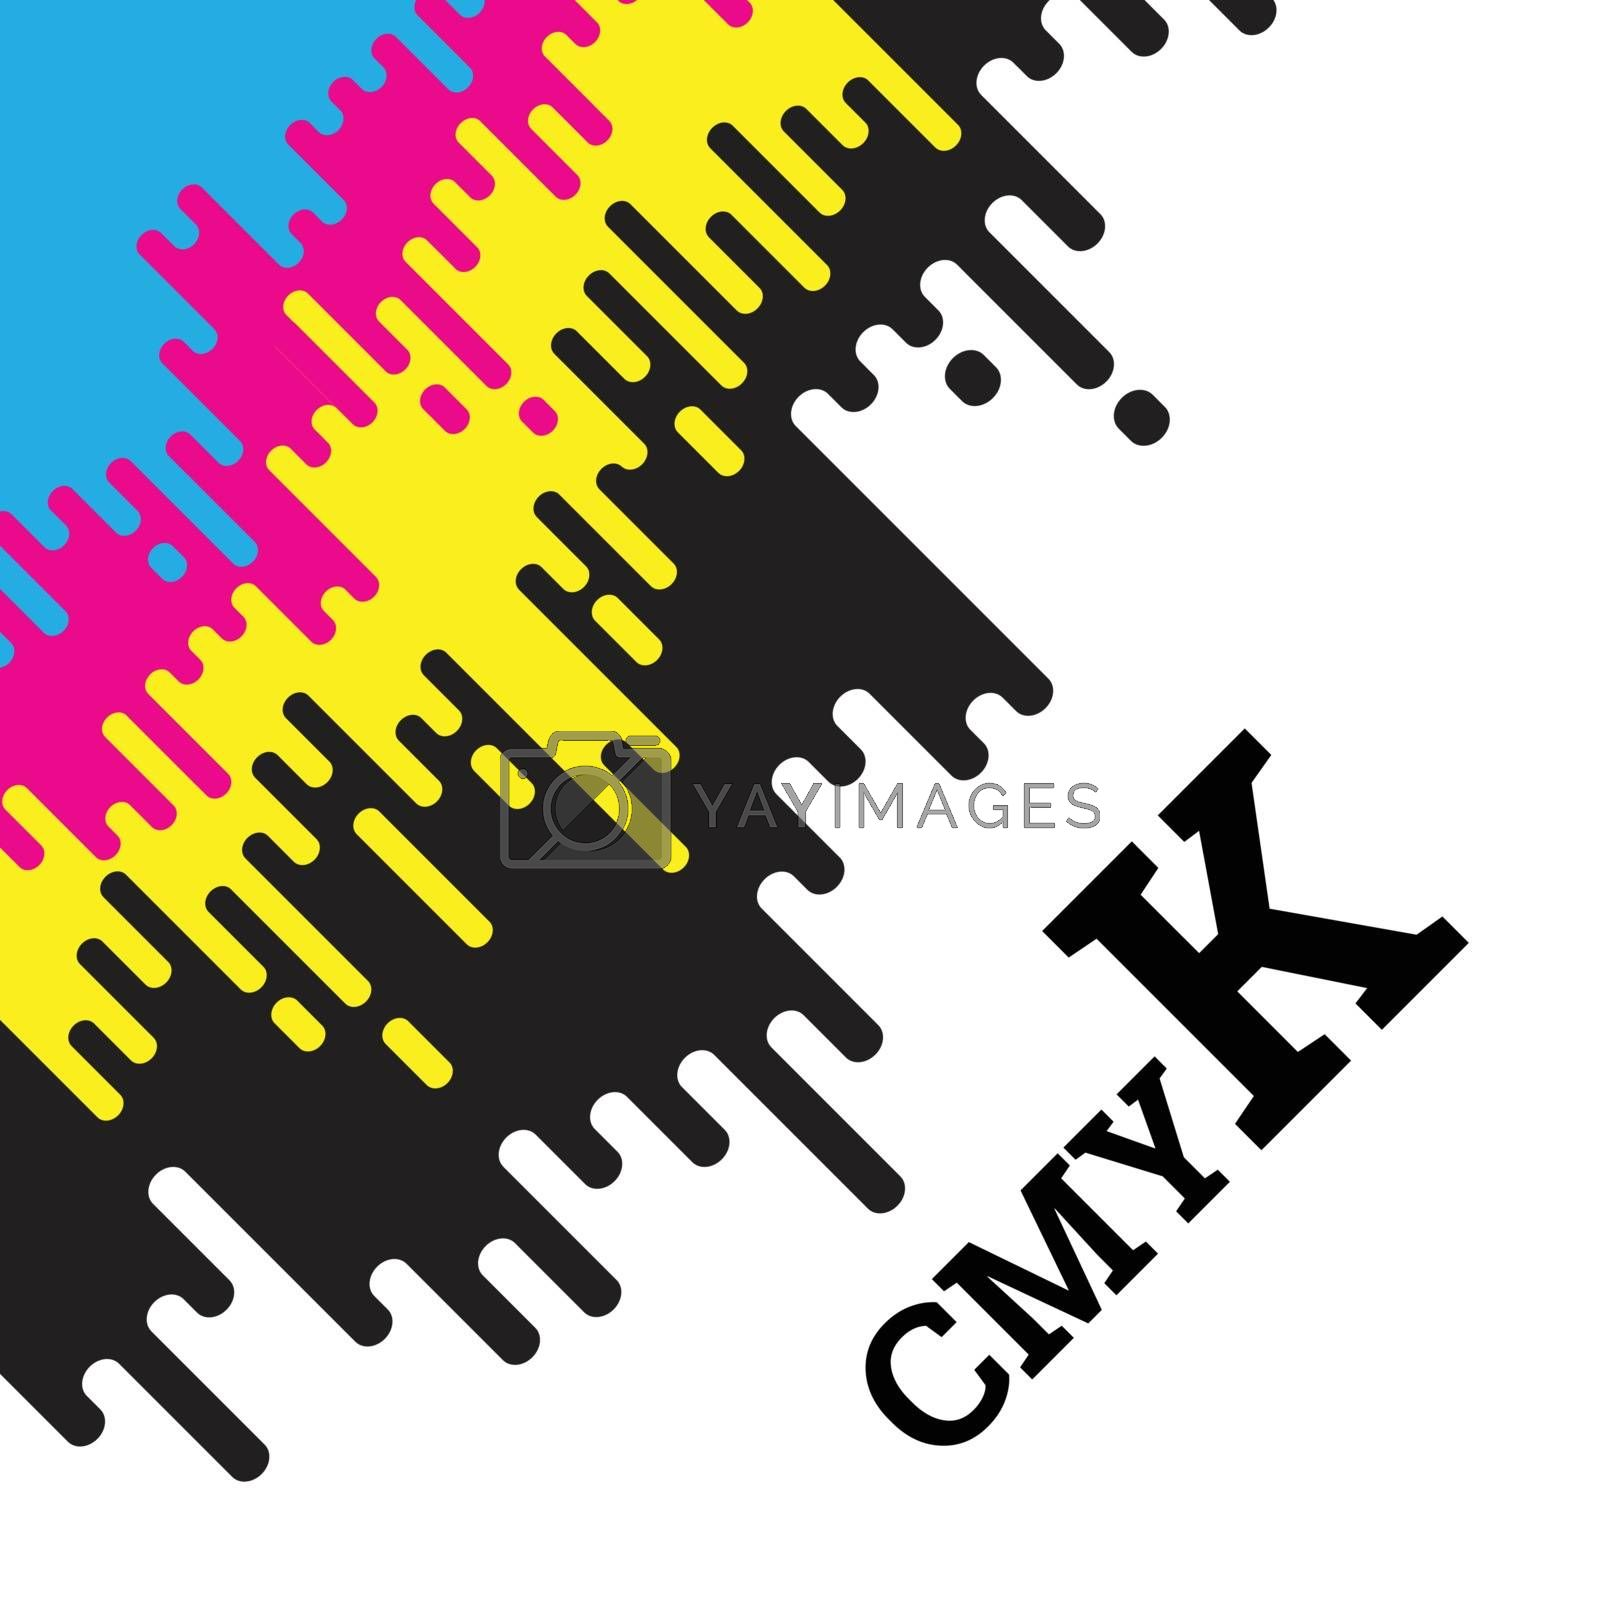 CMYK concept vector illustration with rounded irregular lines